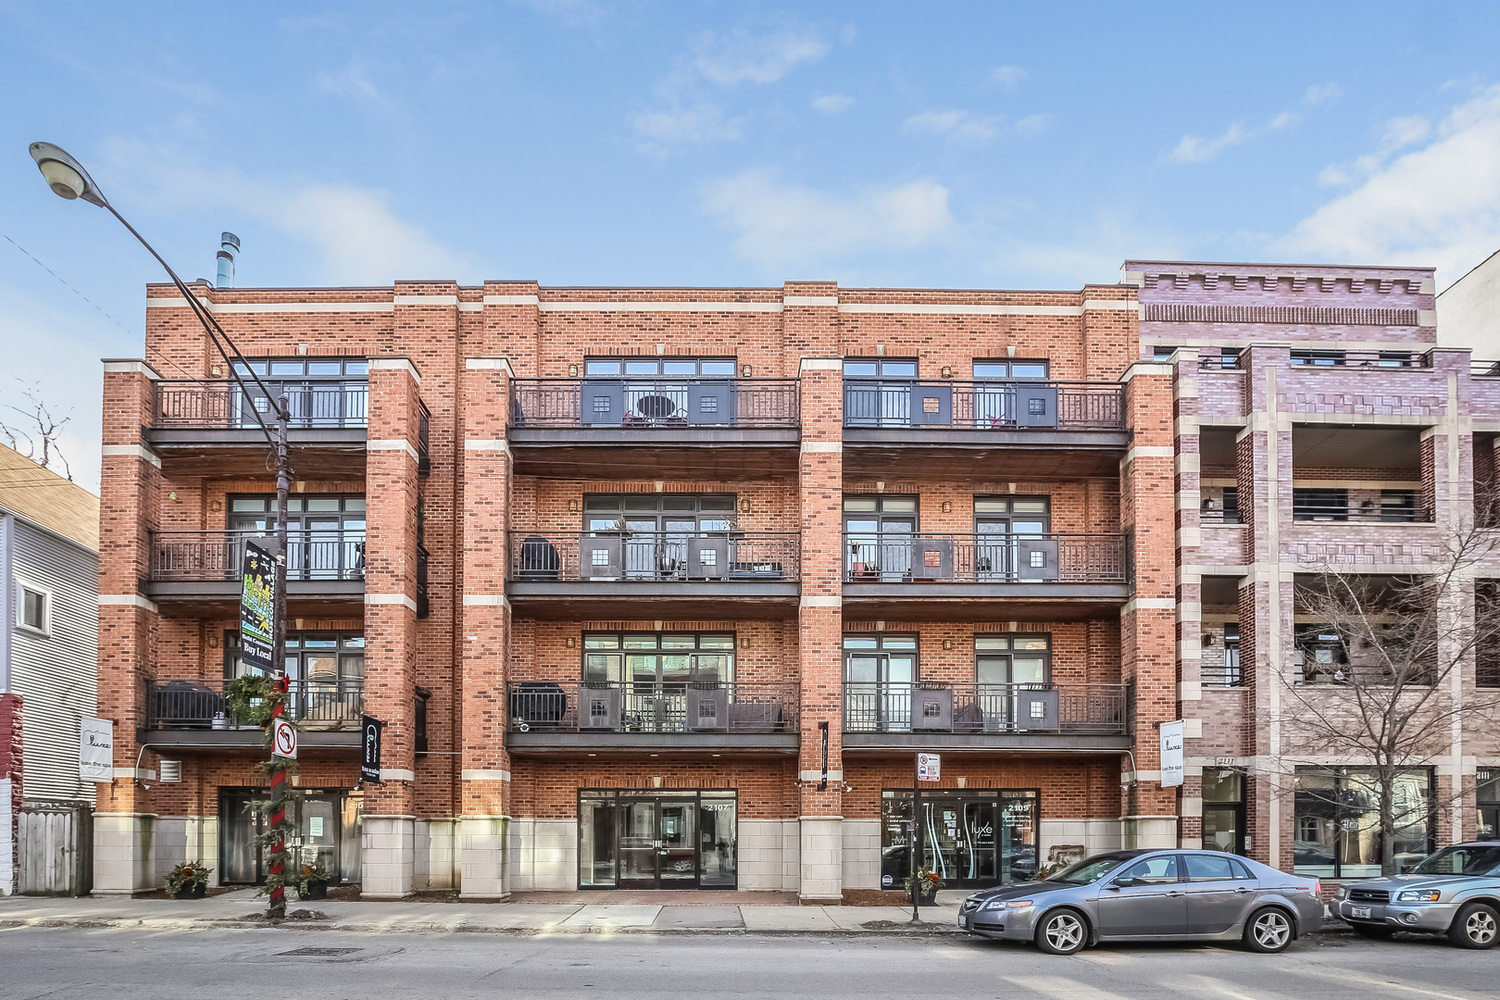 2107 West Belmont Avenue, Unit 4B Chicago, IL 60618